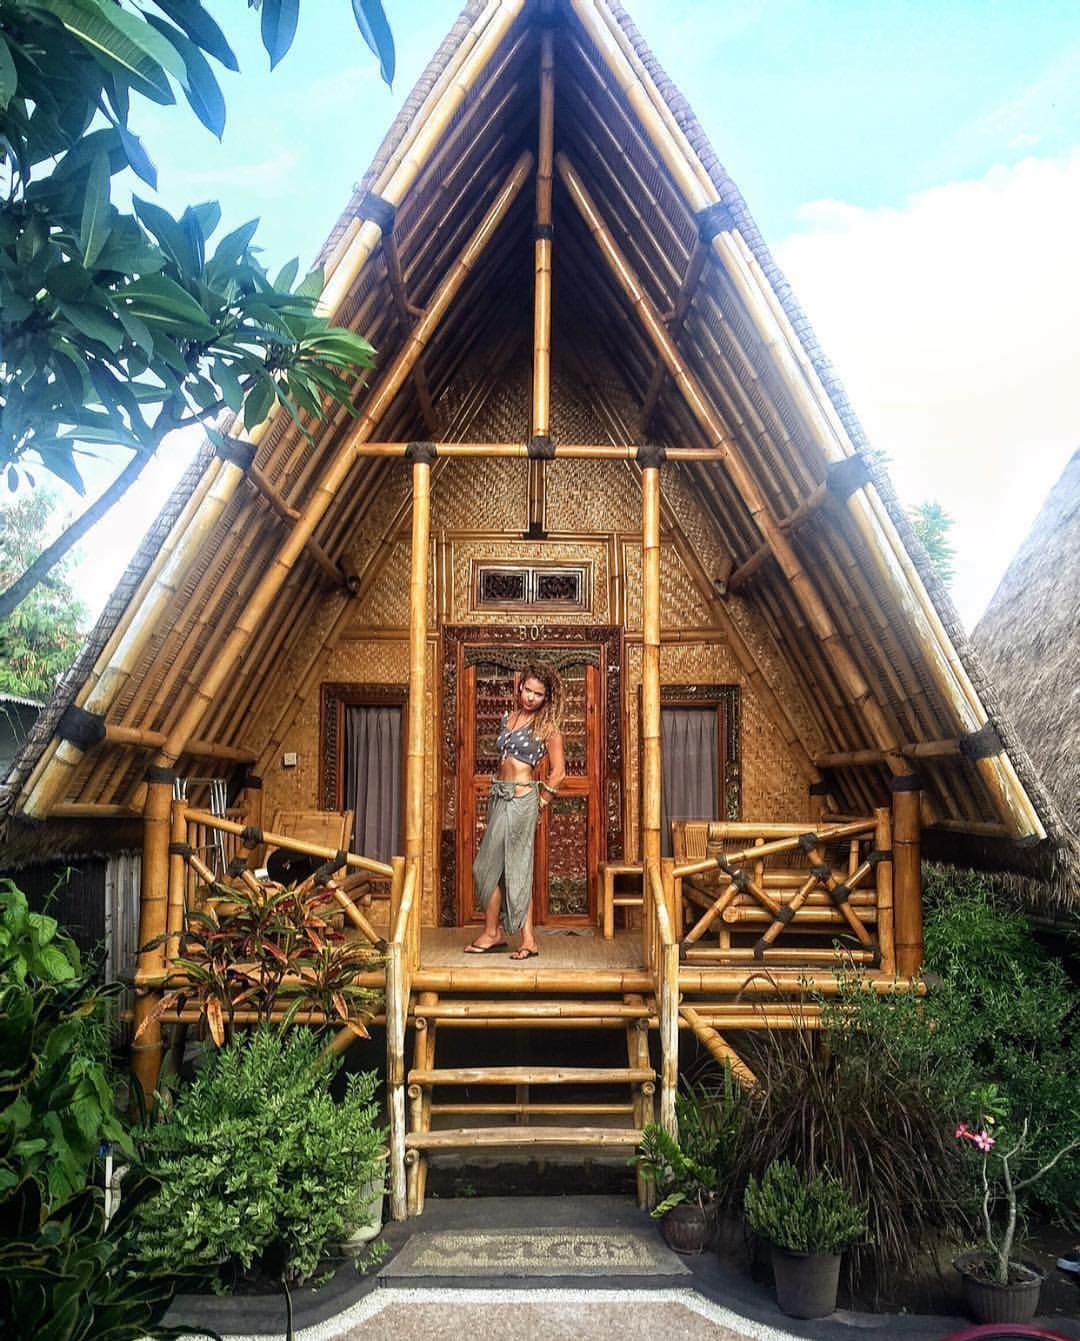 I Want To Stay In A Bungalow Like This In Bali Tiny